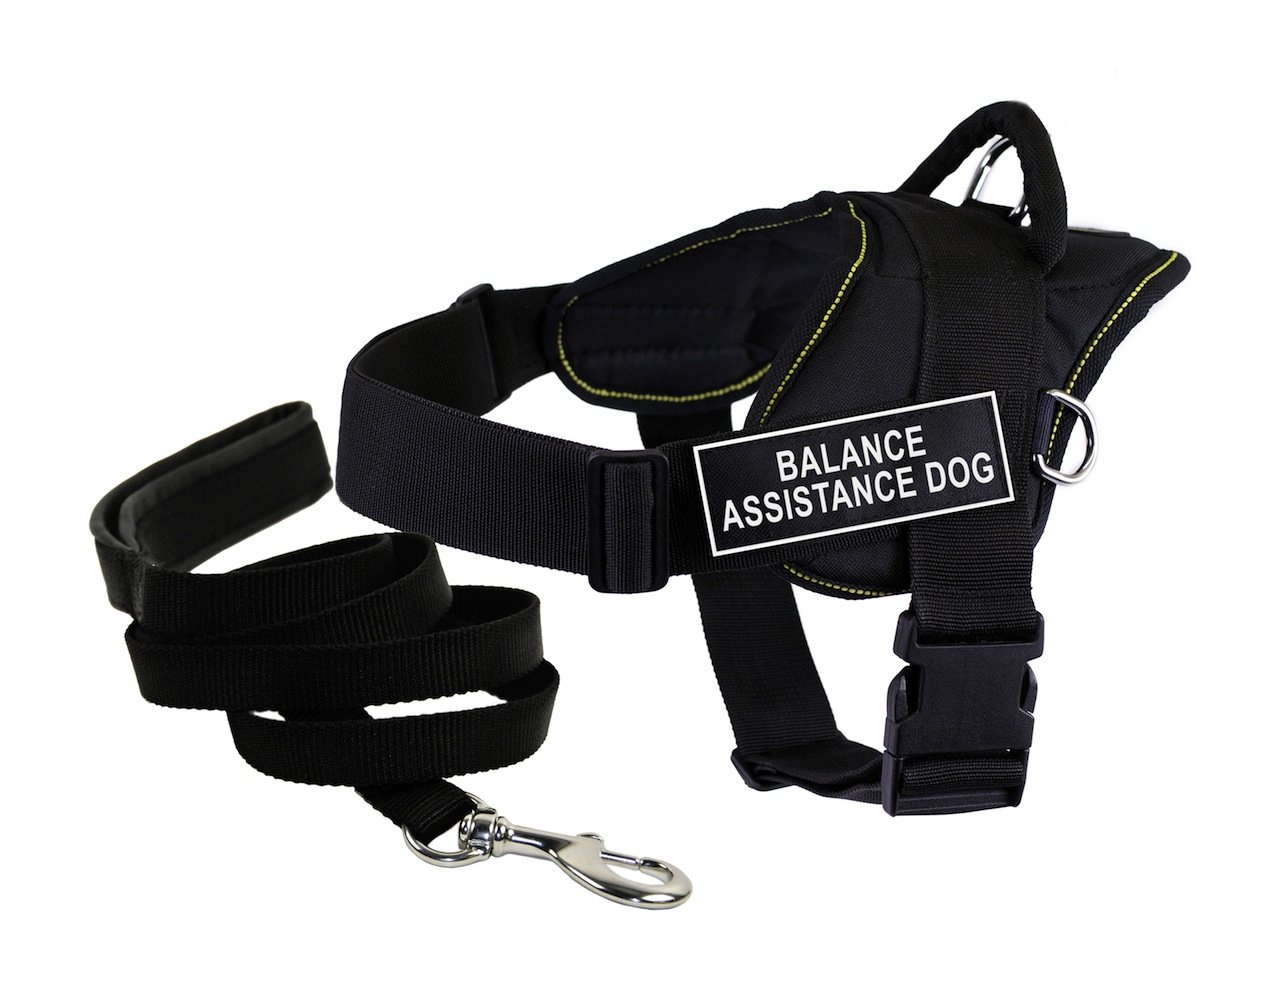 Dean & Tyler's DT Fun BALANCE ASSISTANCE DOG Harness, X-Small, with 6 ft Padded Puppy Leash.